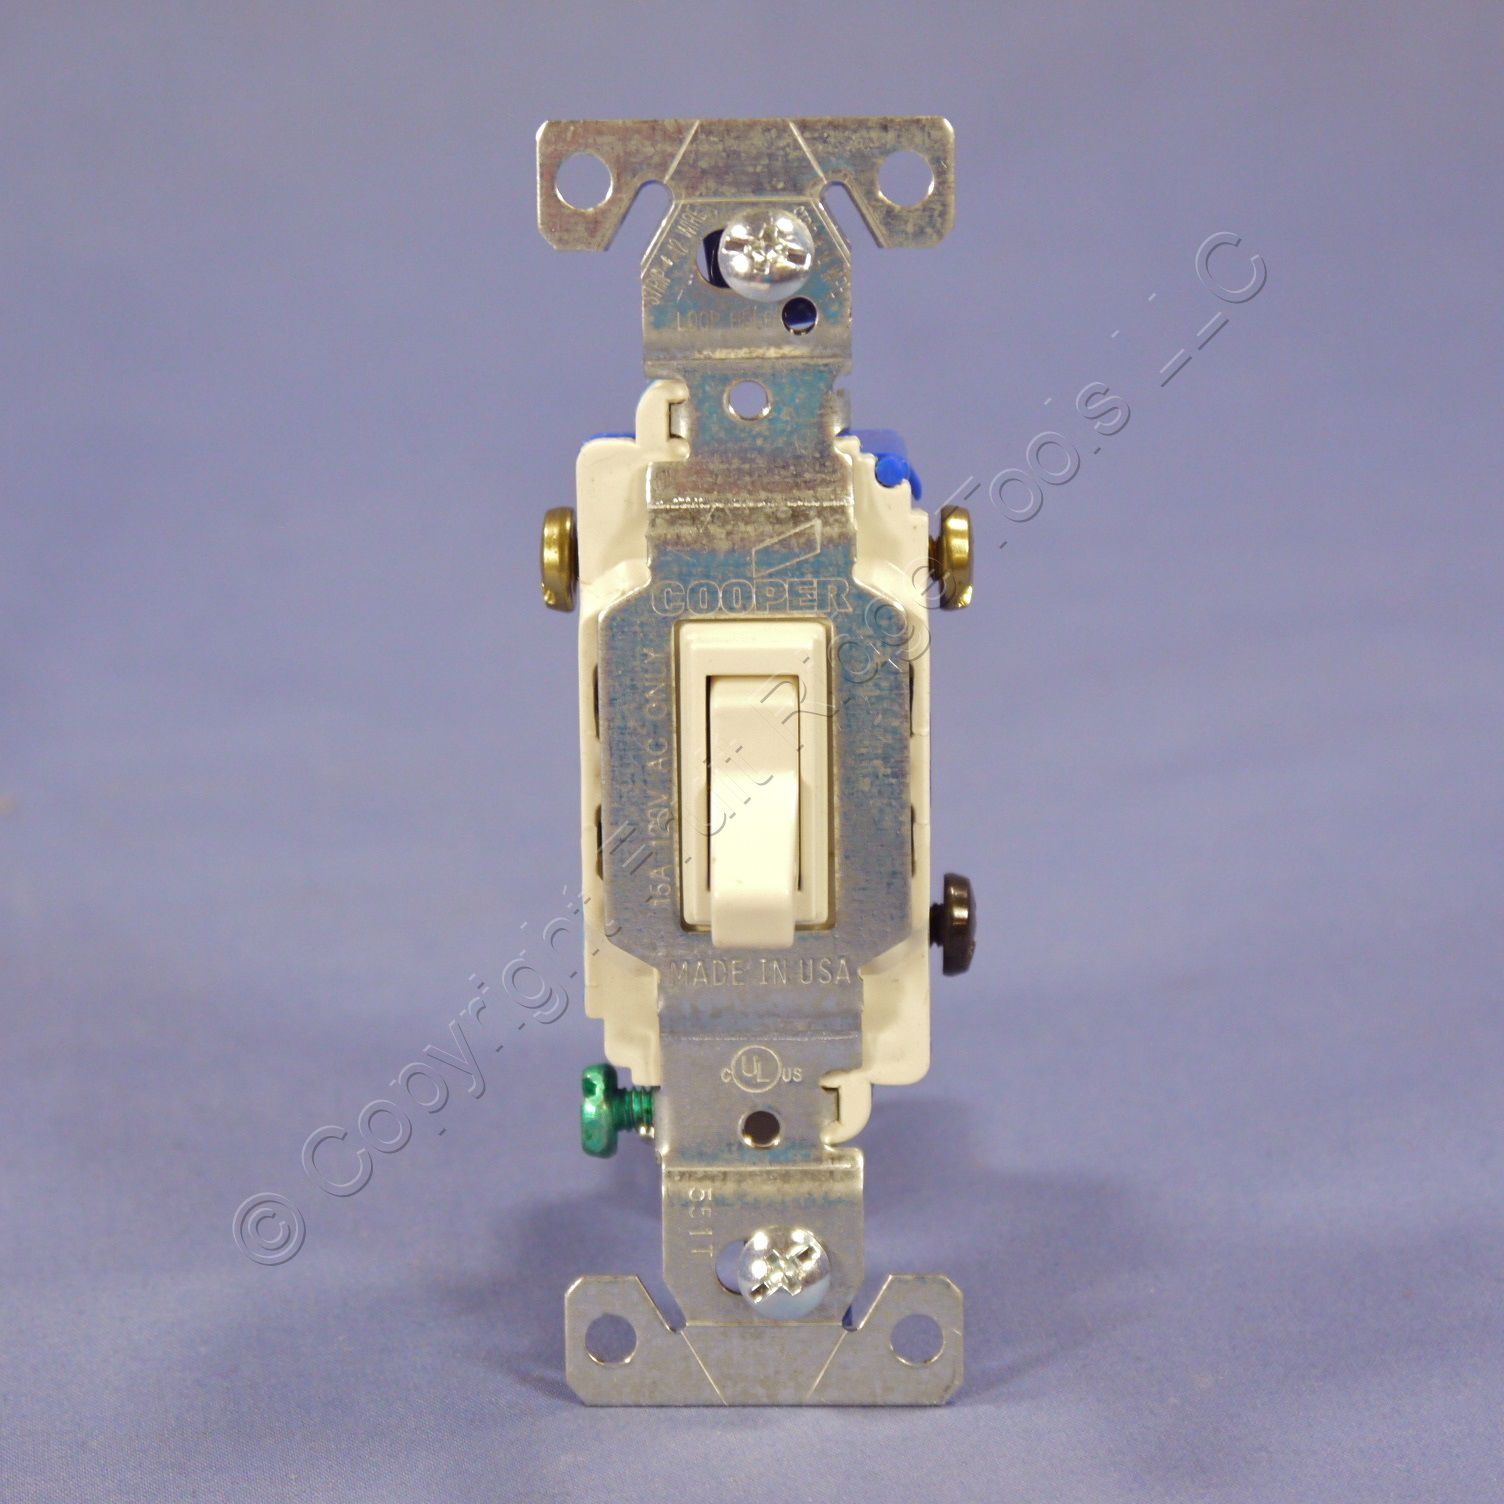 hight resolution of cooper light switch wiring wiring toggle switch with light led light bar wiring to toggle switch